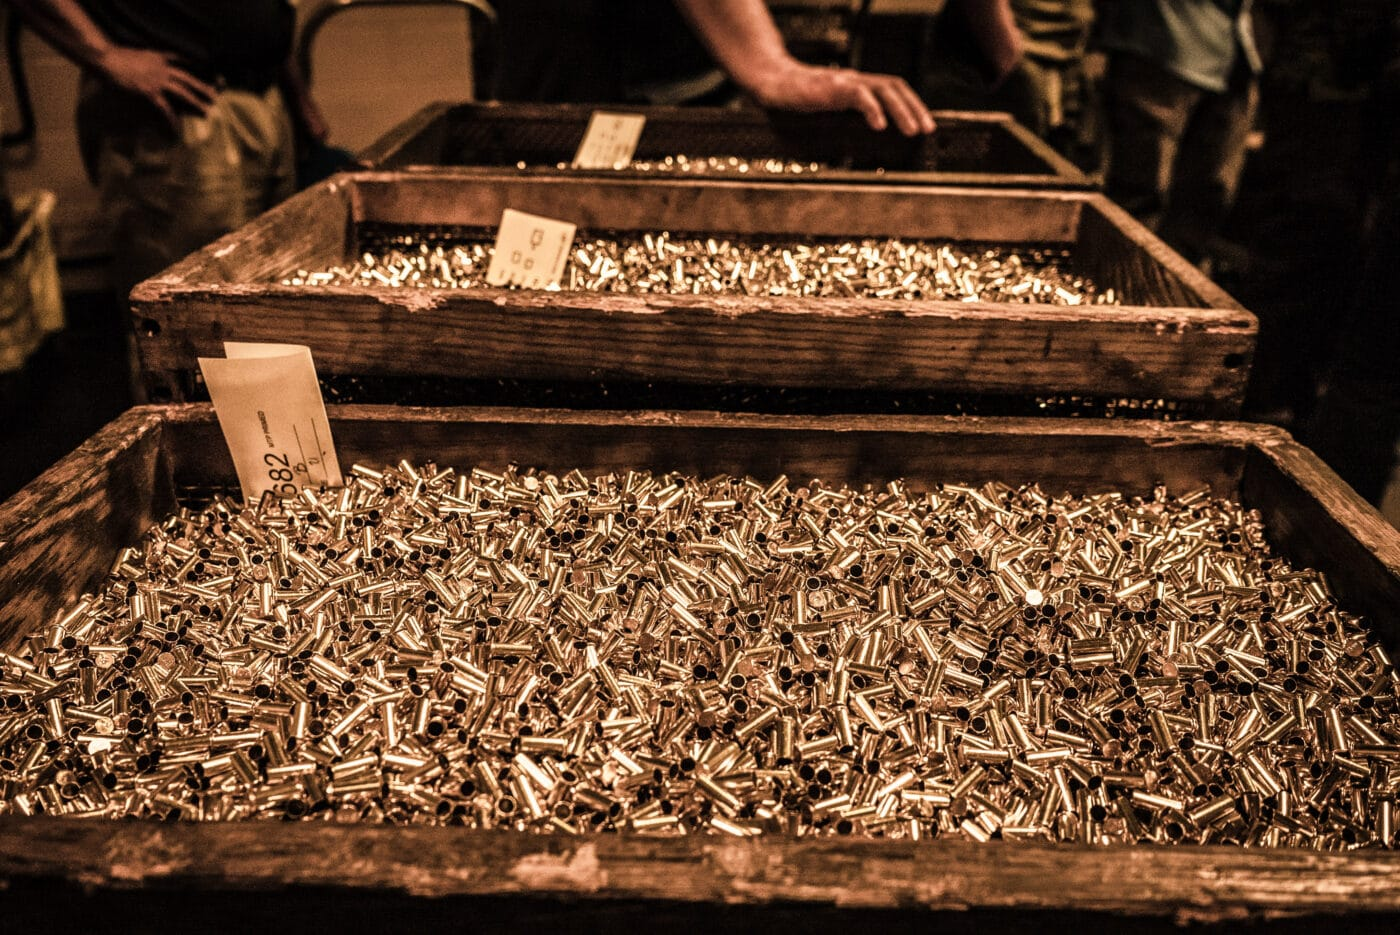 Remington rifle brass at the factory